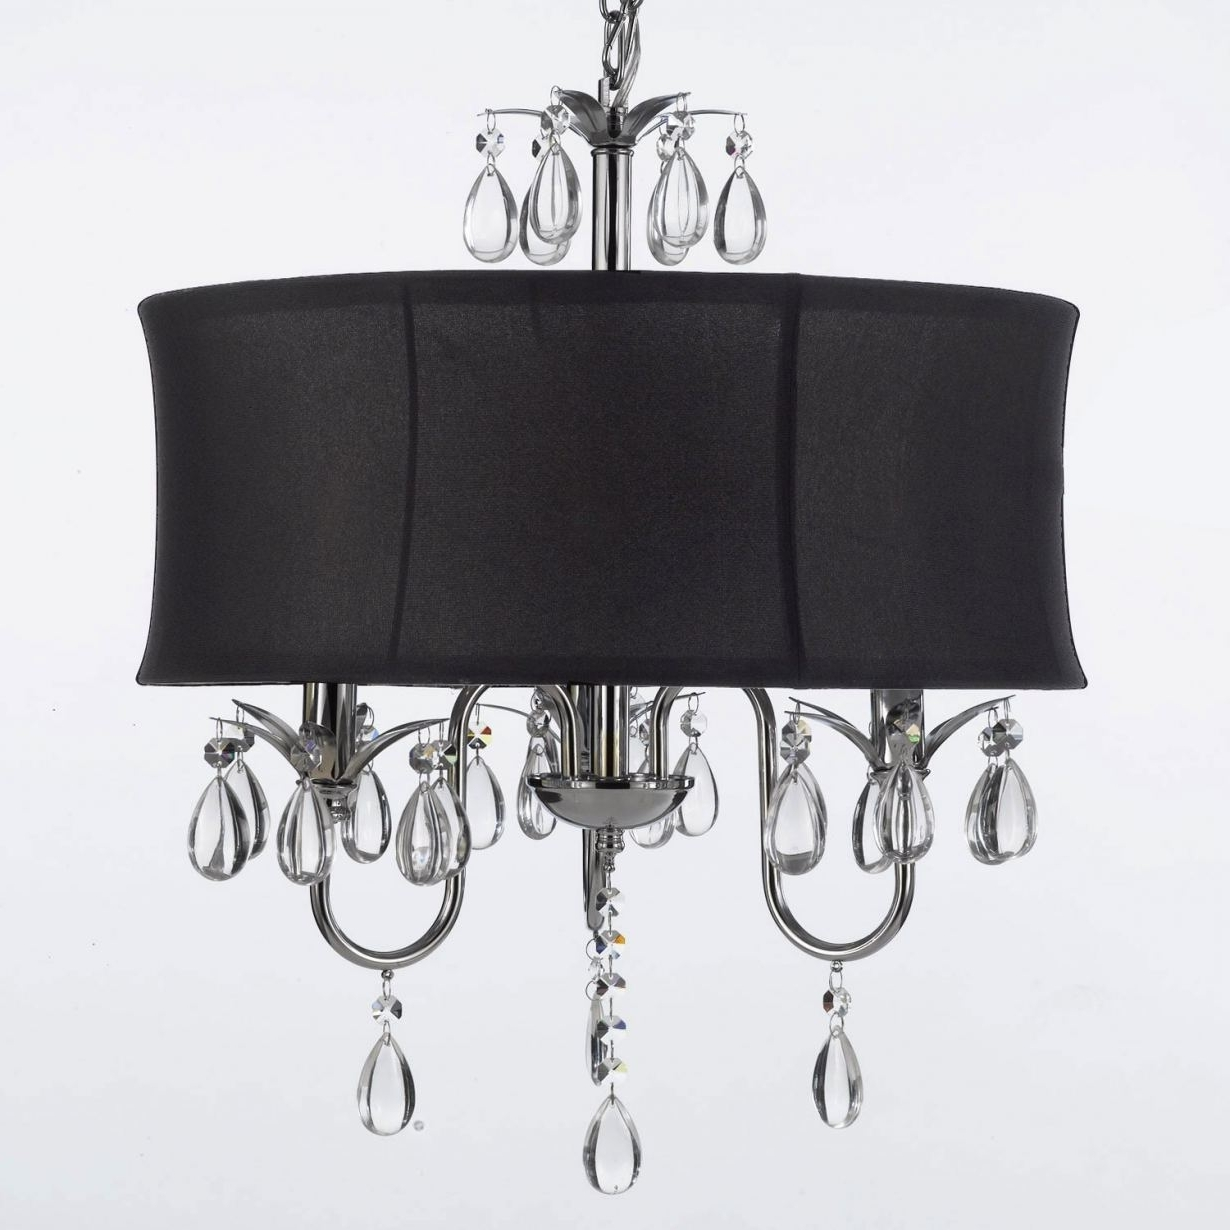 Contemporary Black Chandelier With Well Known Black Crystal Chandelier Lighting #3 Modern Contemporary Black Drum (View 11 of 20)